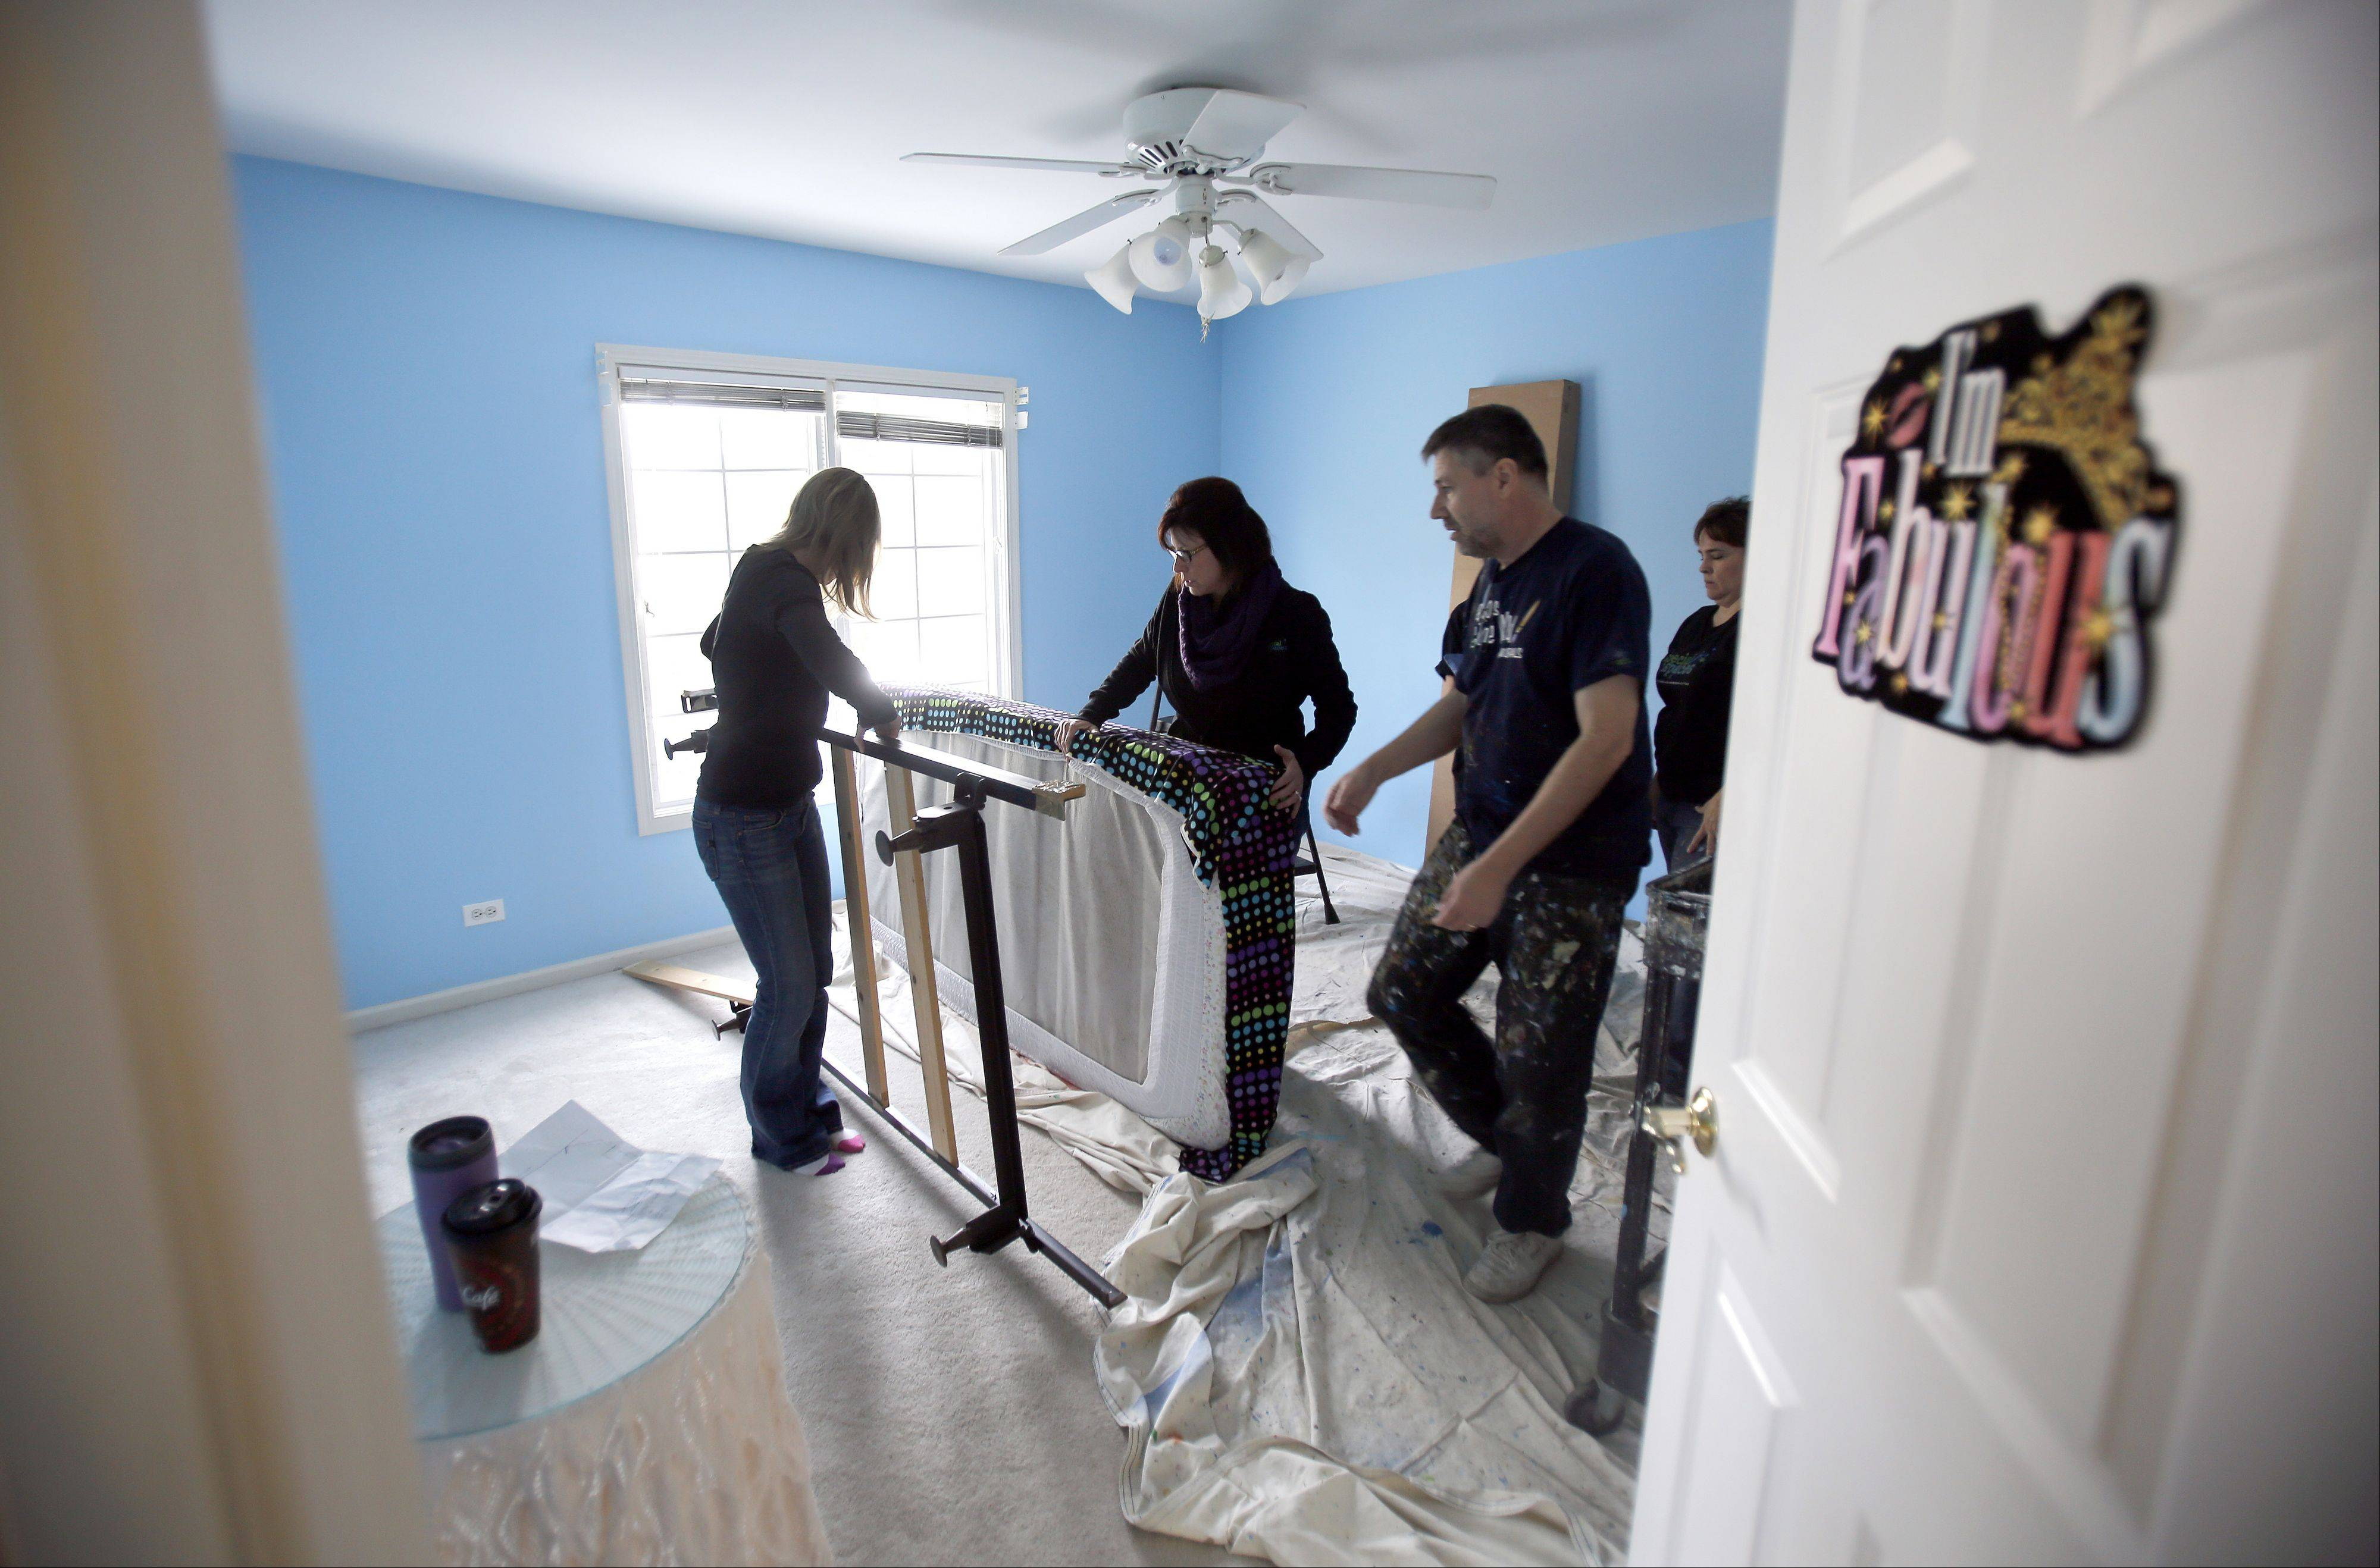 Brian Hill/bhill@dailyherald.comSpecial Spaces Chicagoland, a non-profit organization that creates dream bedrooms for children with life-threatening medical conditions works on Catharine Steiner's bedroom in St. Charles Thursday. Here the crew gets started on the room.